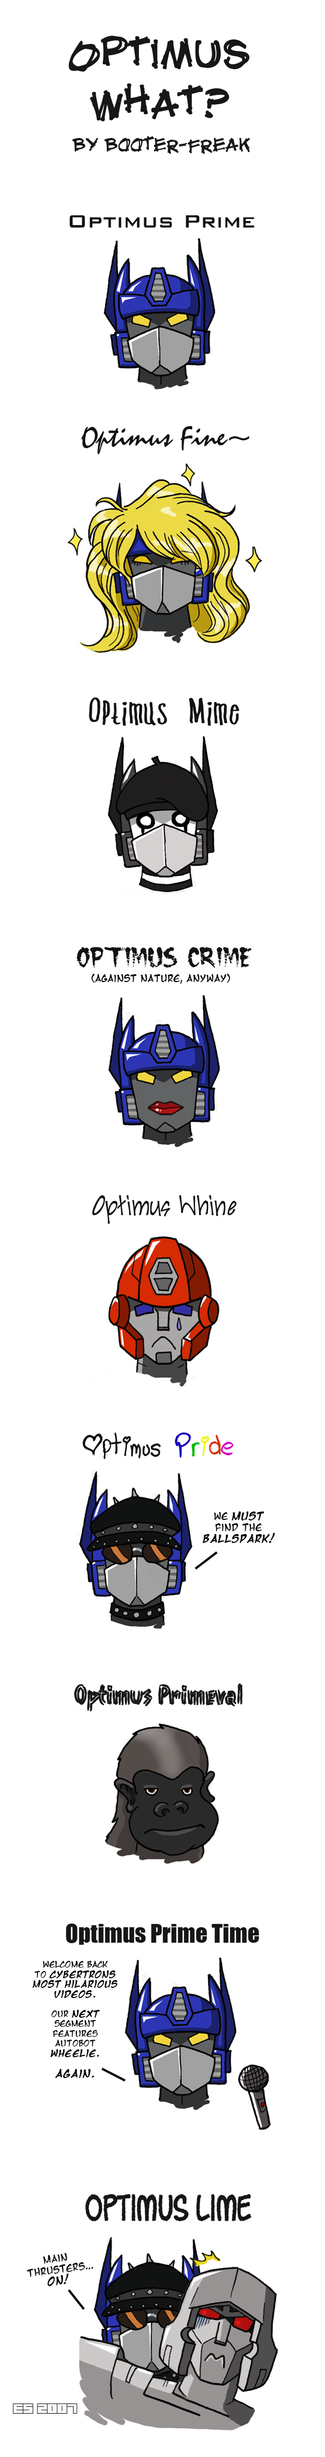 Optimus What by Booter-Freak